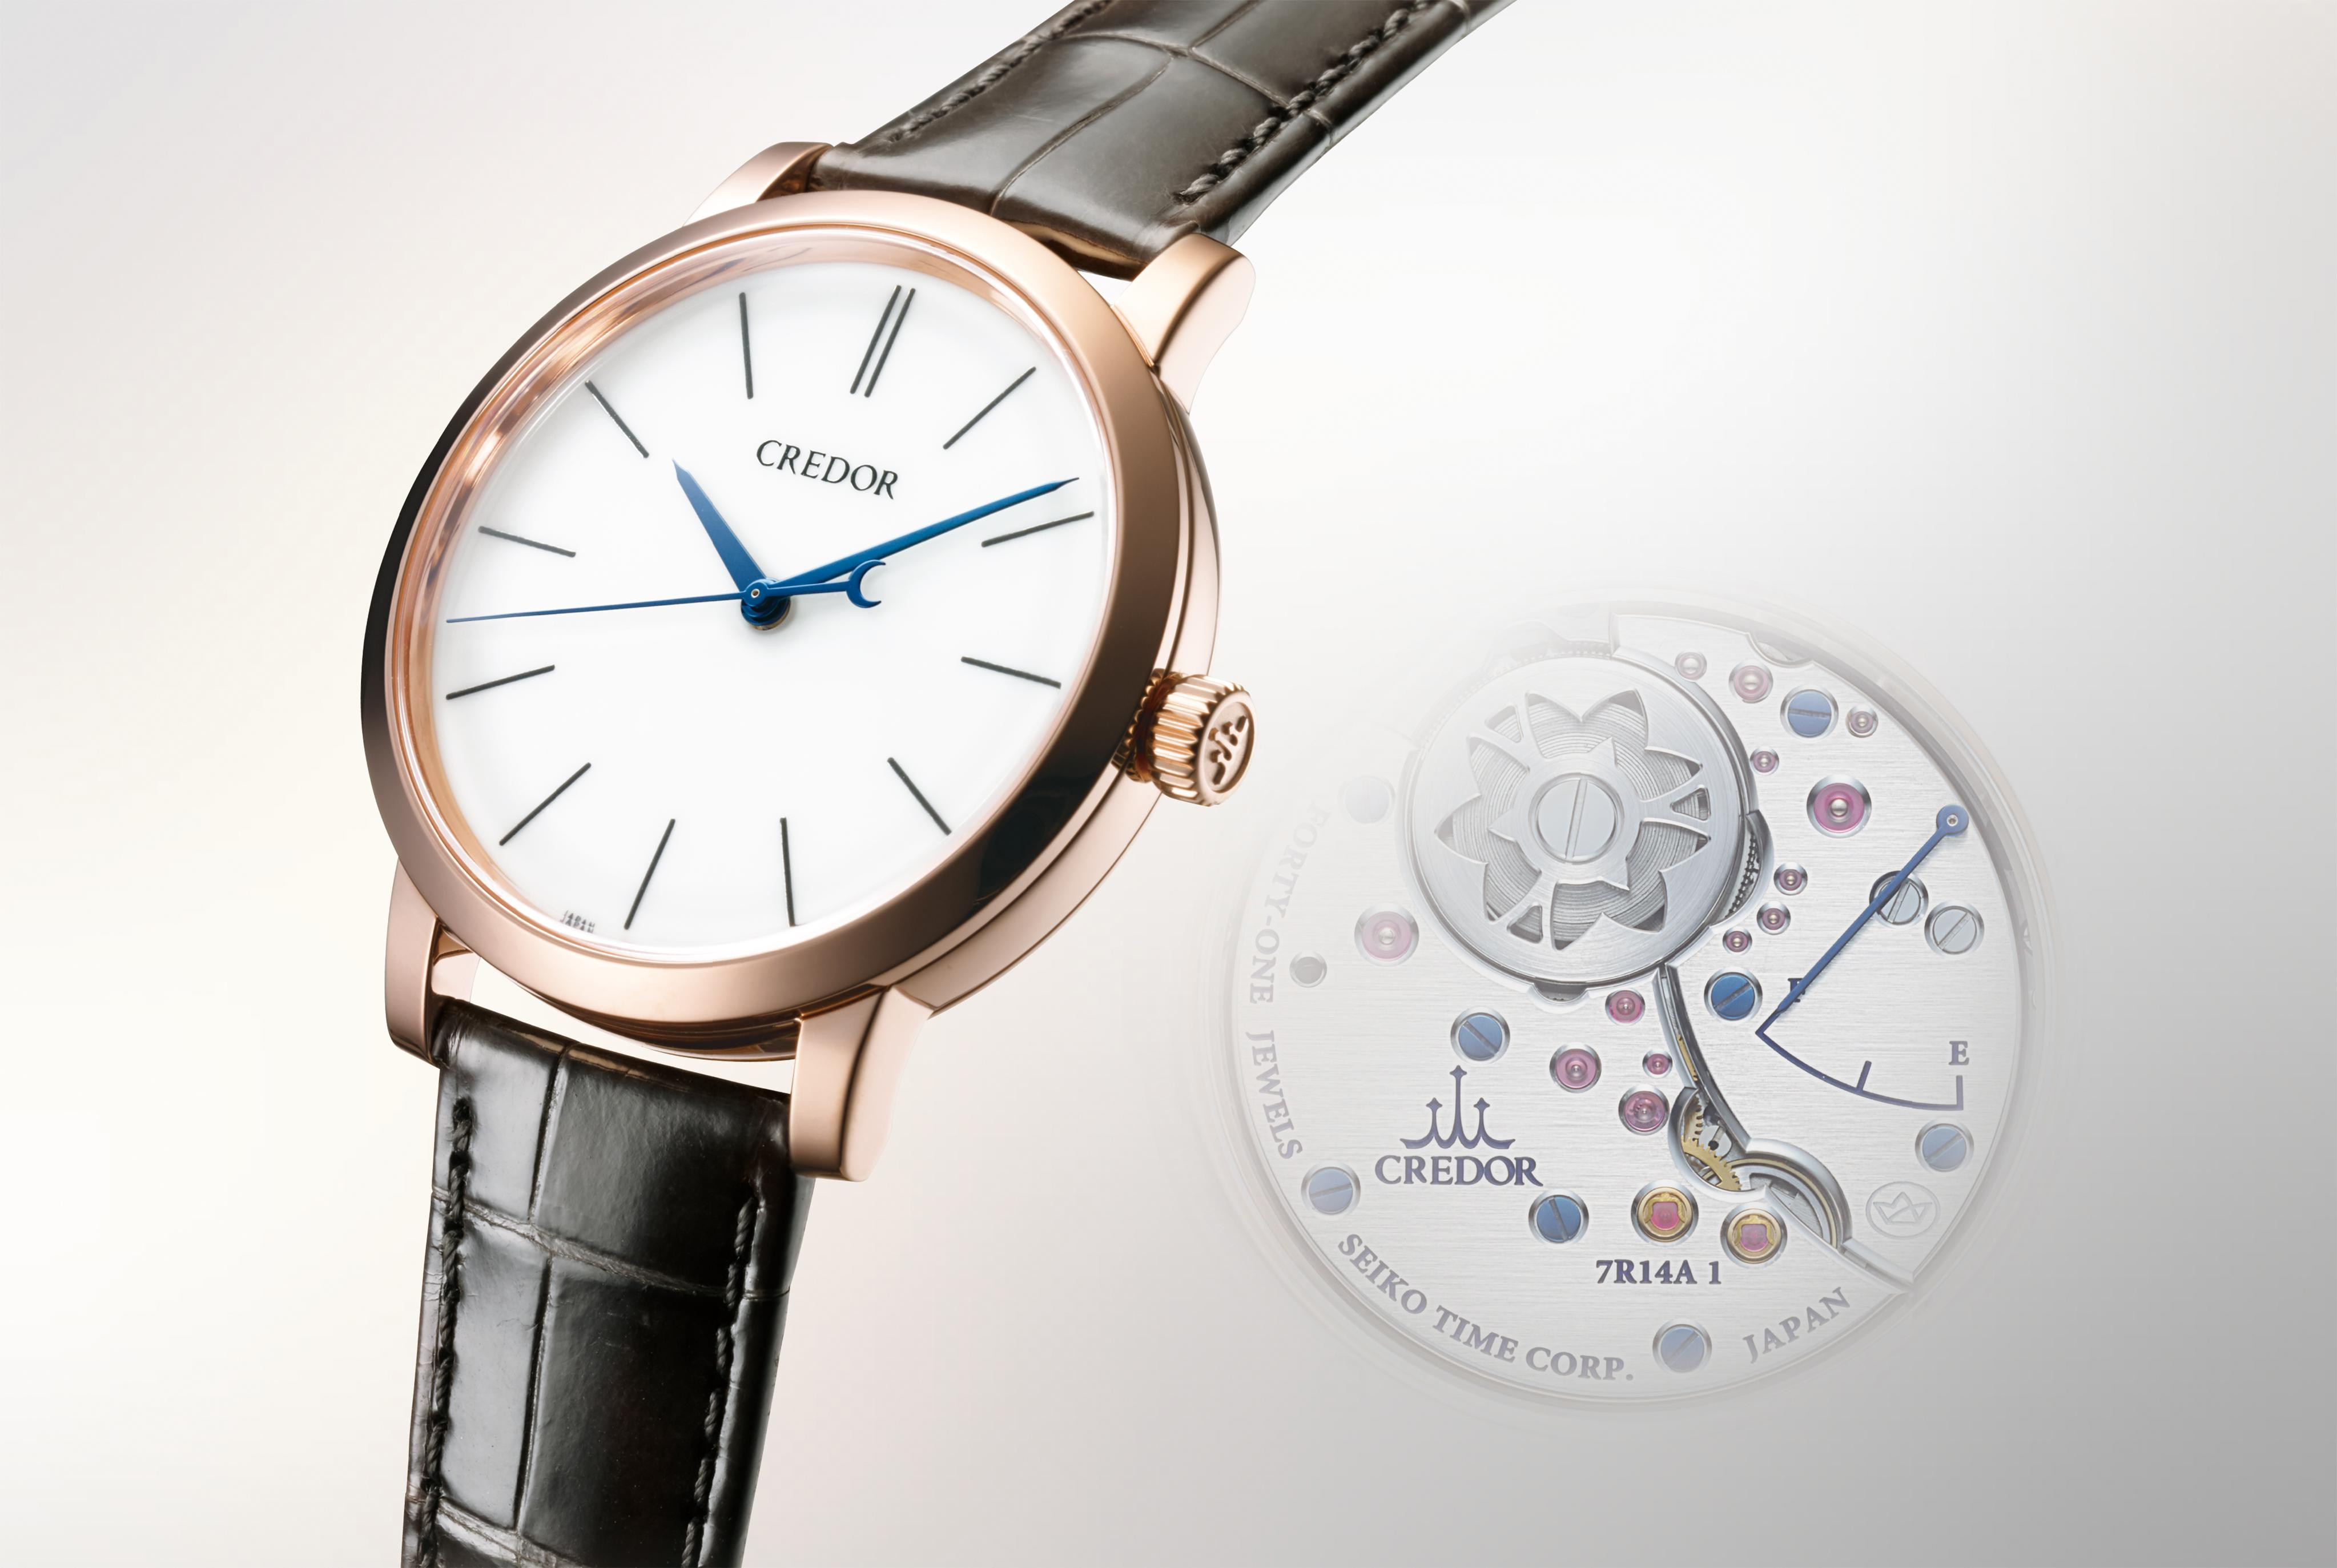 Image result for credor watches